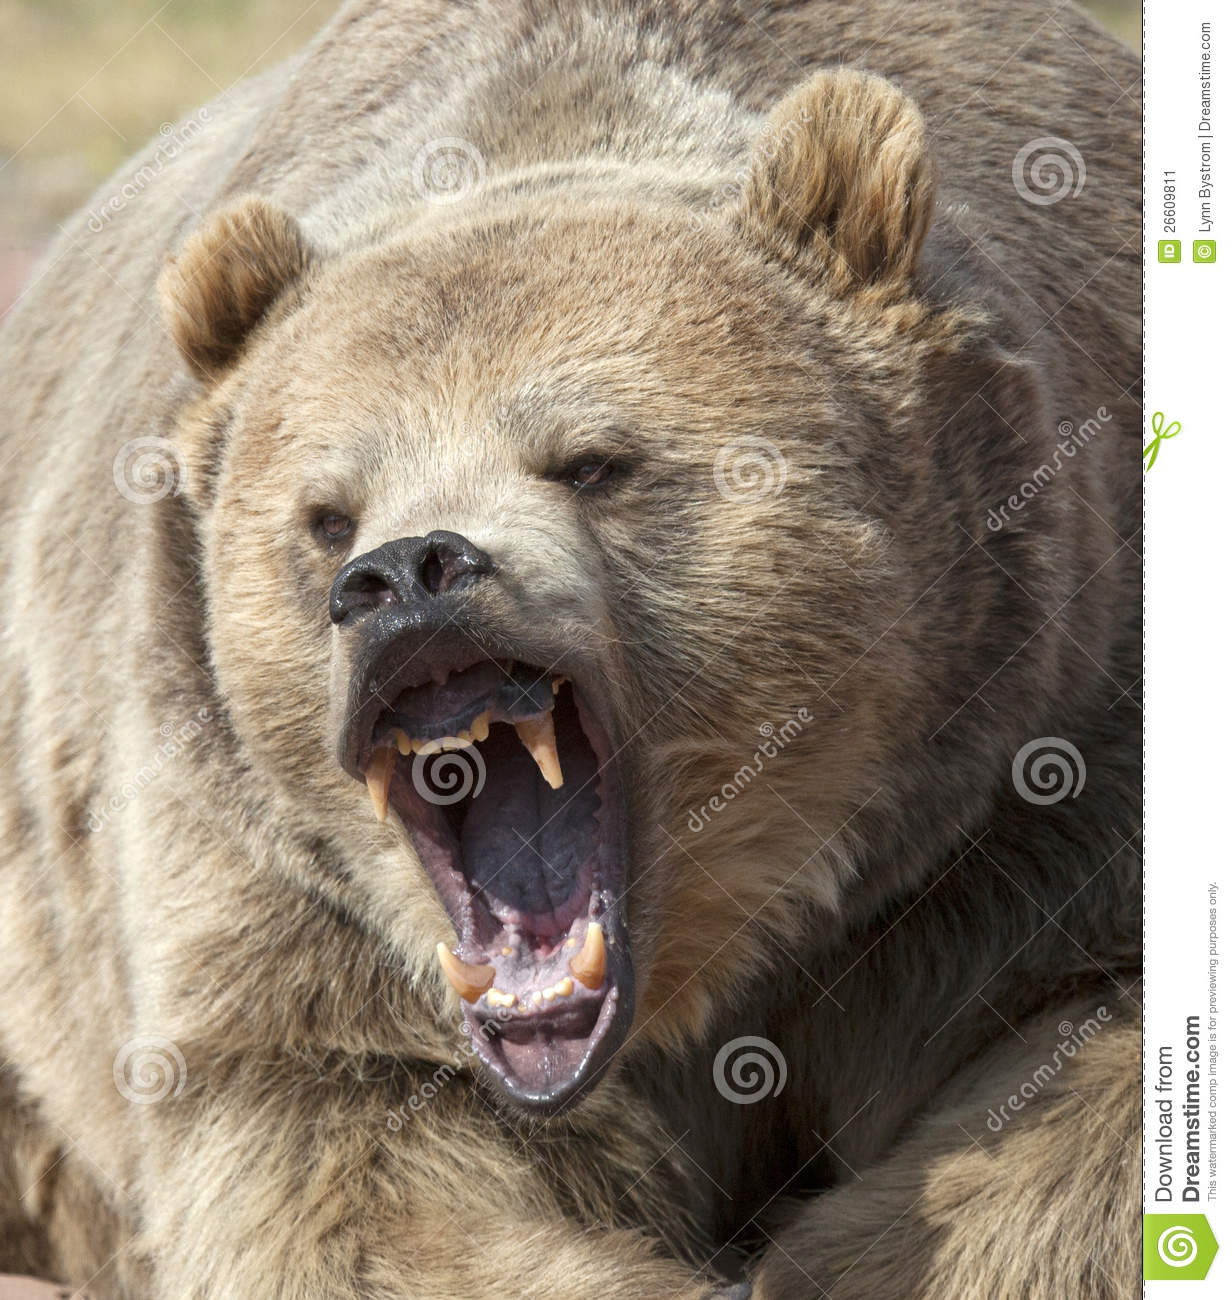 Growling Grizzly Bear Stock Image Image Of Animal Nature